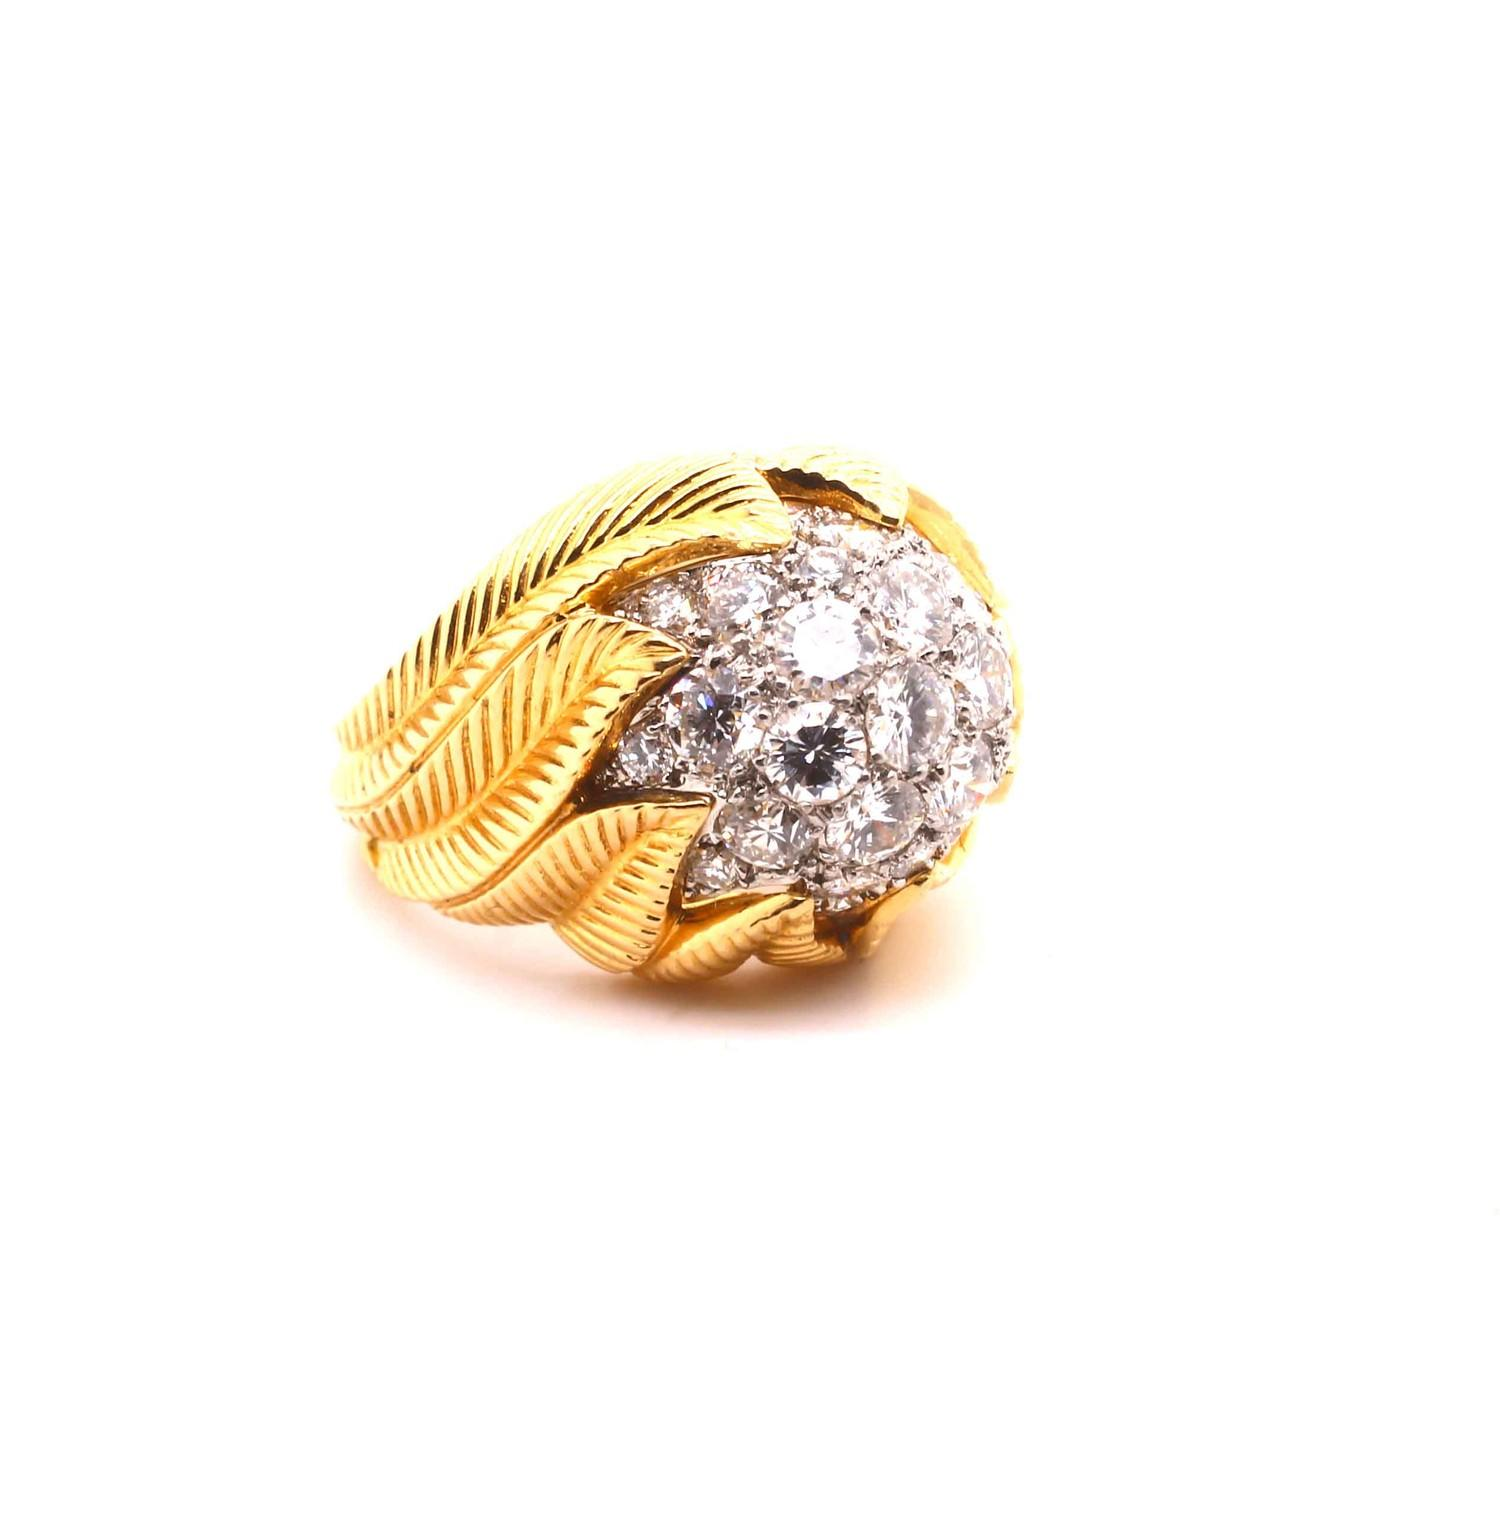 A Van Cleef & Aprel Cocktail Ring with a Pave set diamond flame ring mounted in an intricate - Image 3 of 7